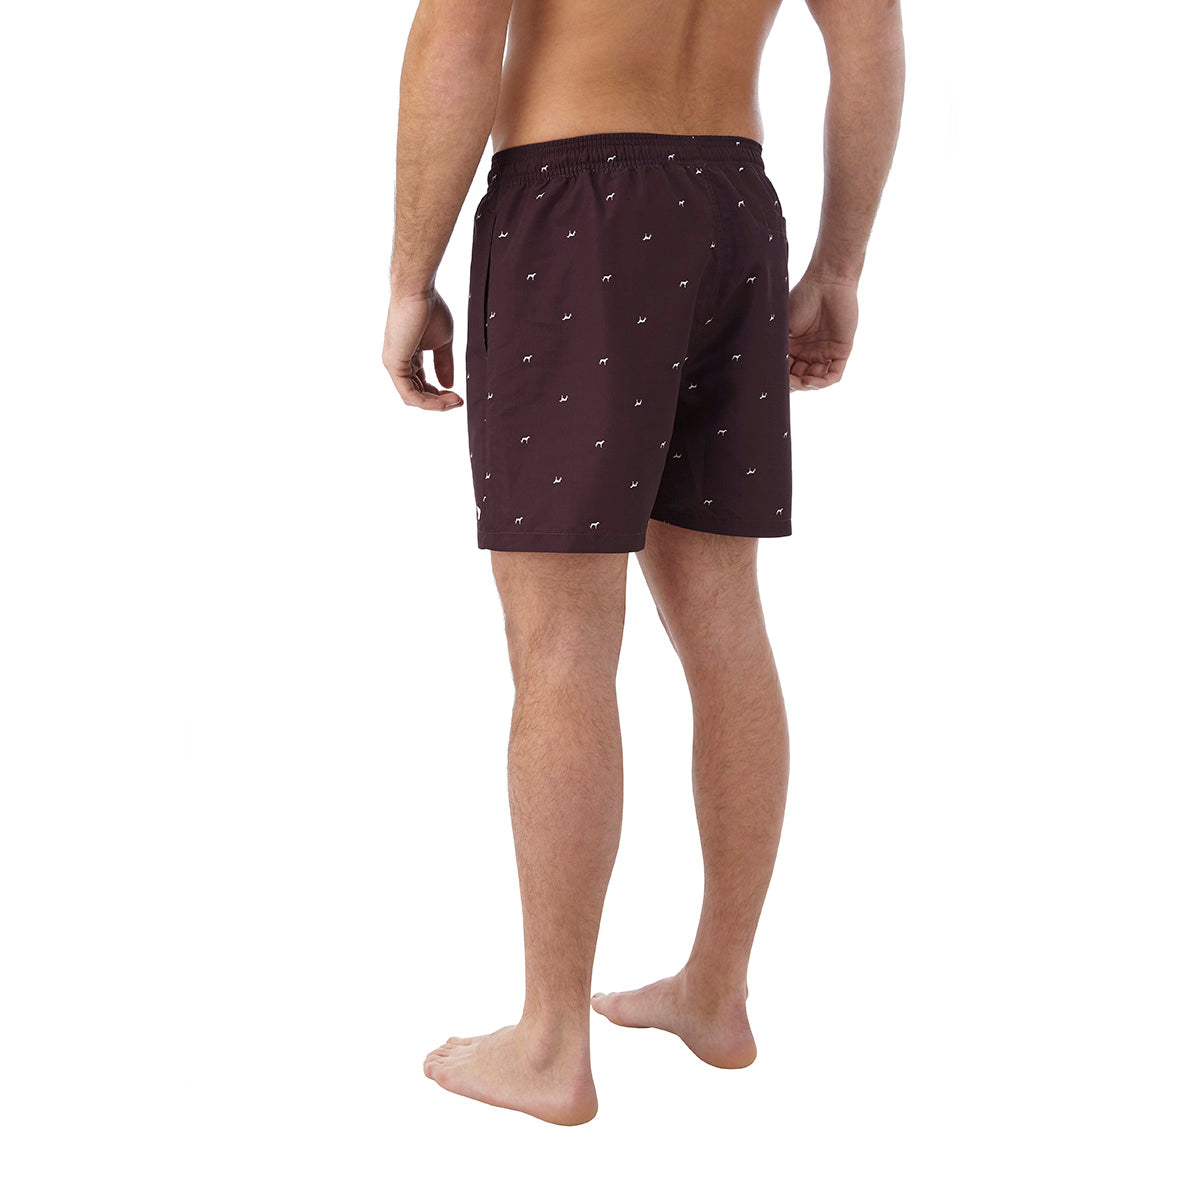 Arthur Mens Swimshorts - Deep Port Print image 4